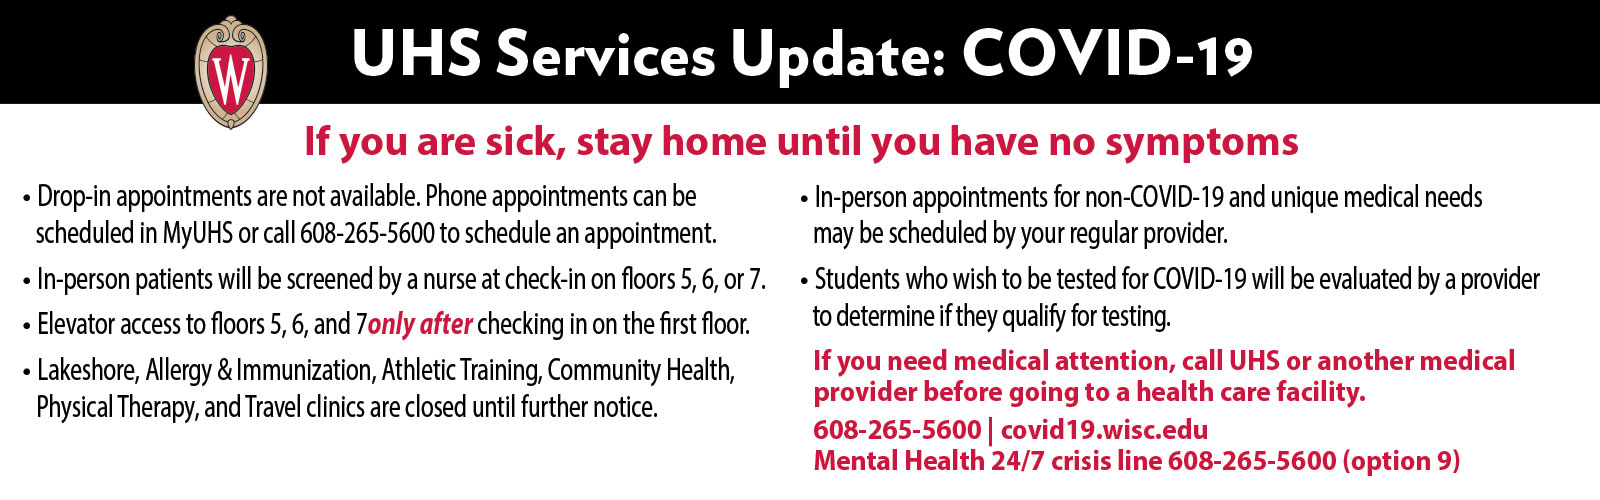 UHS Services Update: If you are sick, stay home until you have no symptoms.